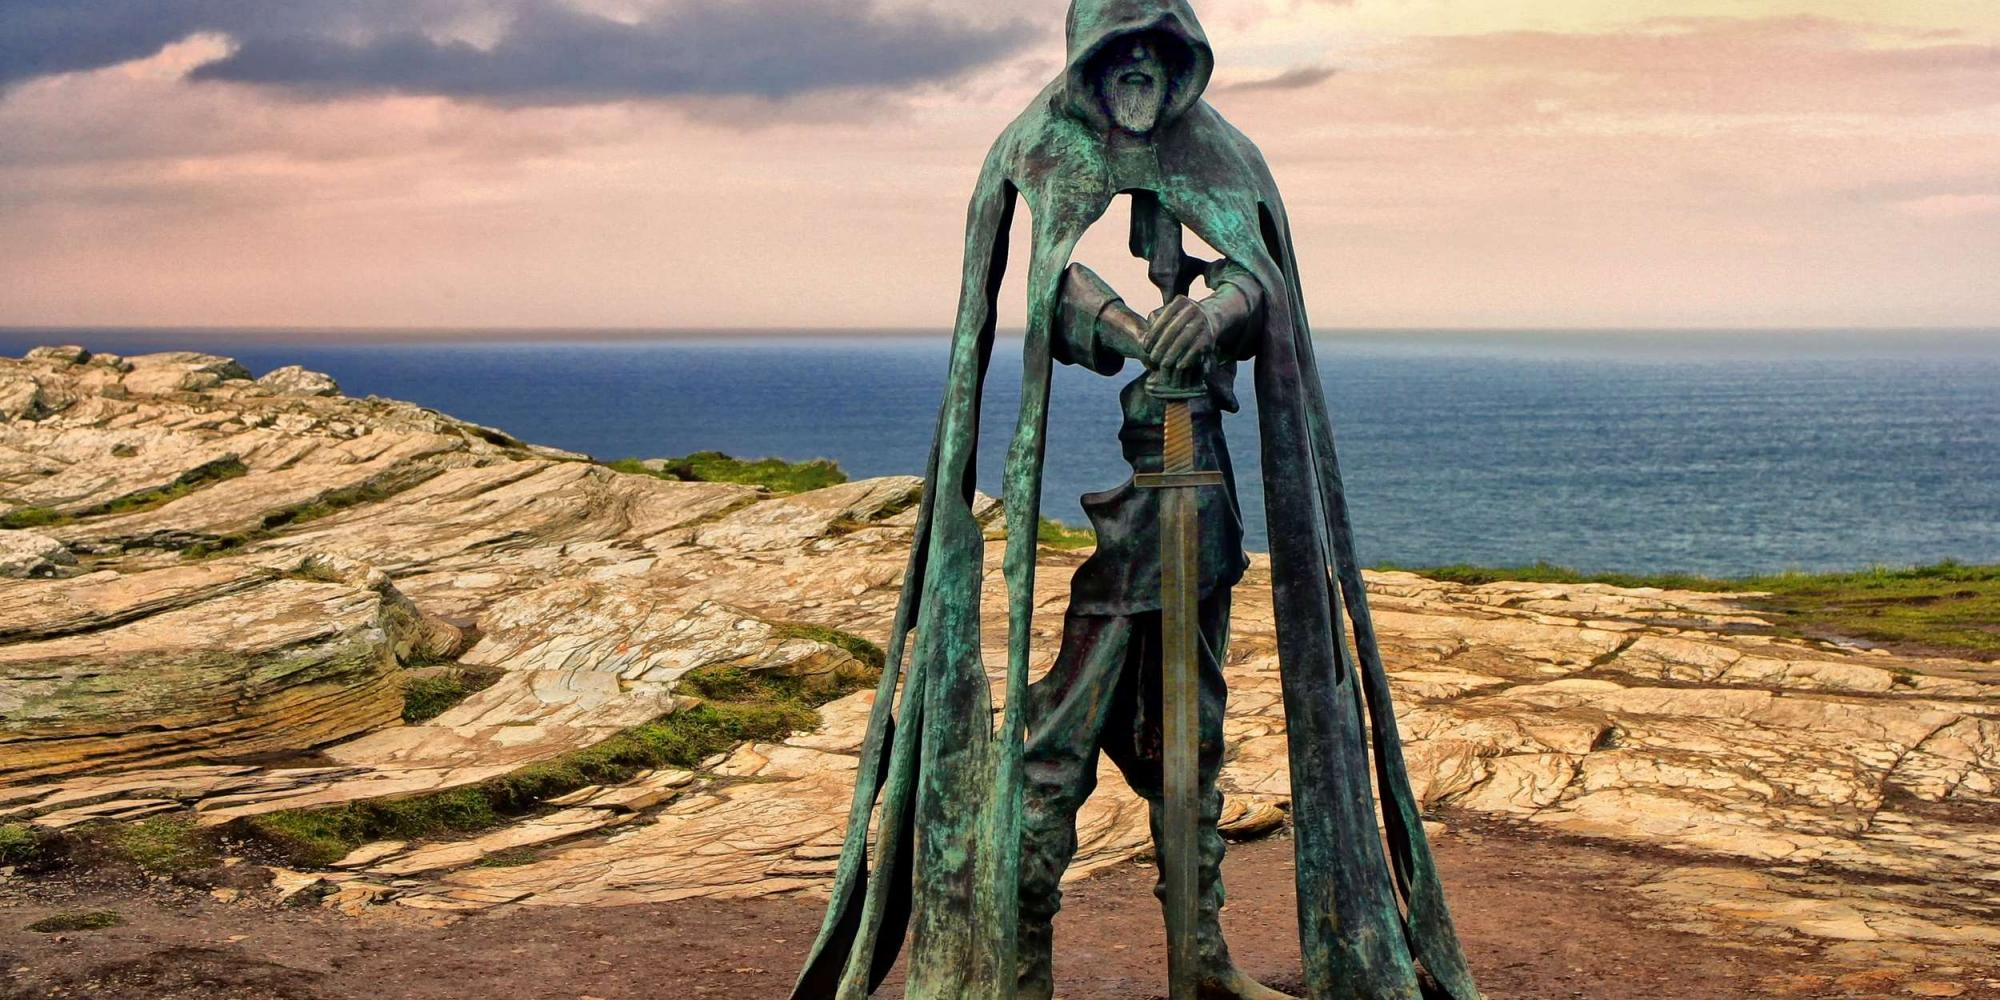 Tintagel: Statua di Re Artù